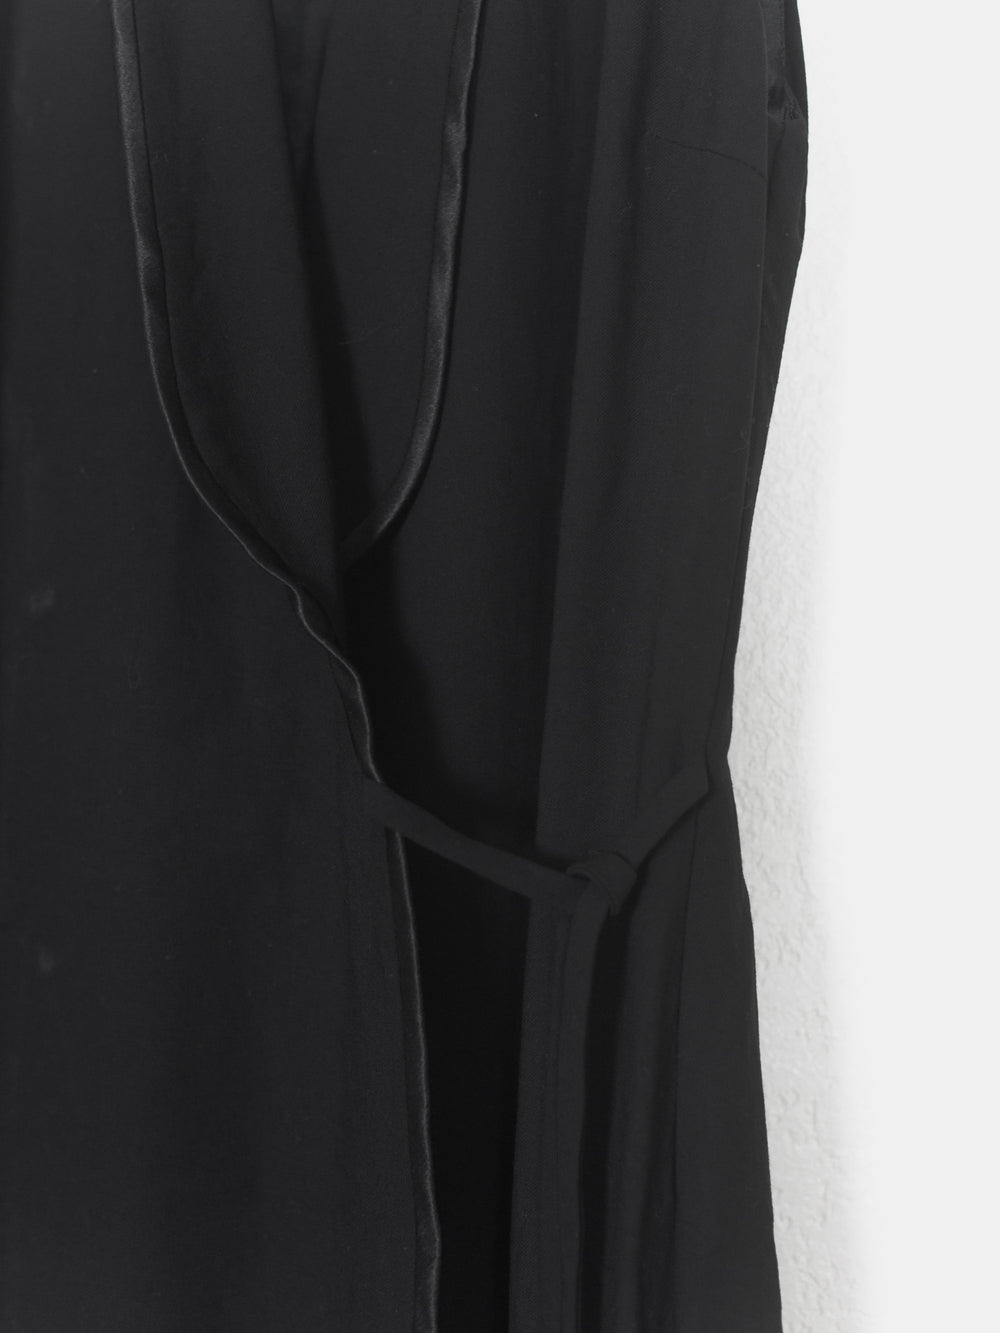 Maison Martin Margiela Wrap Dress Coat